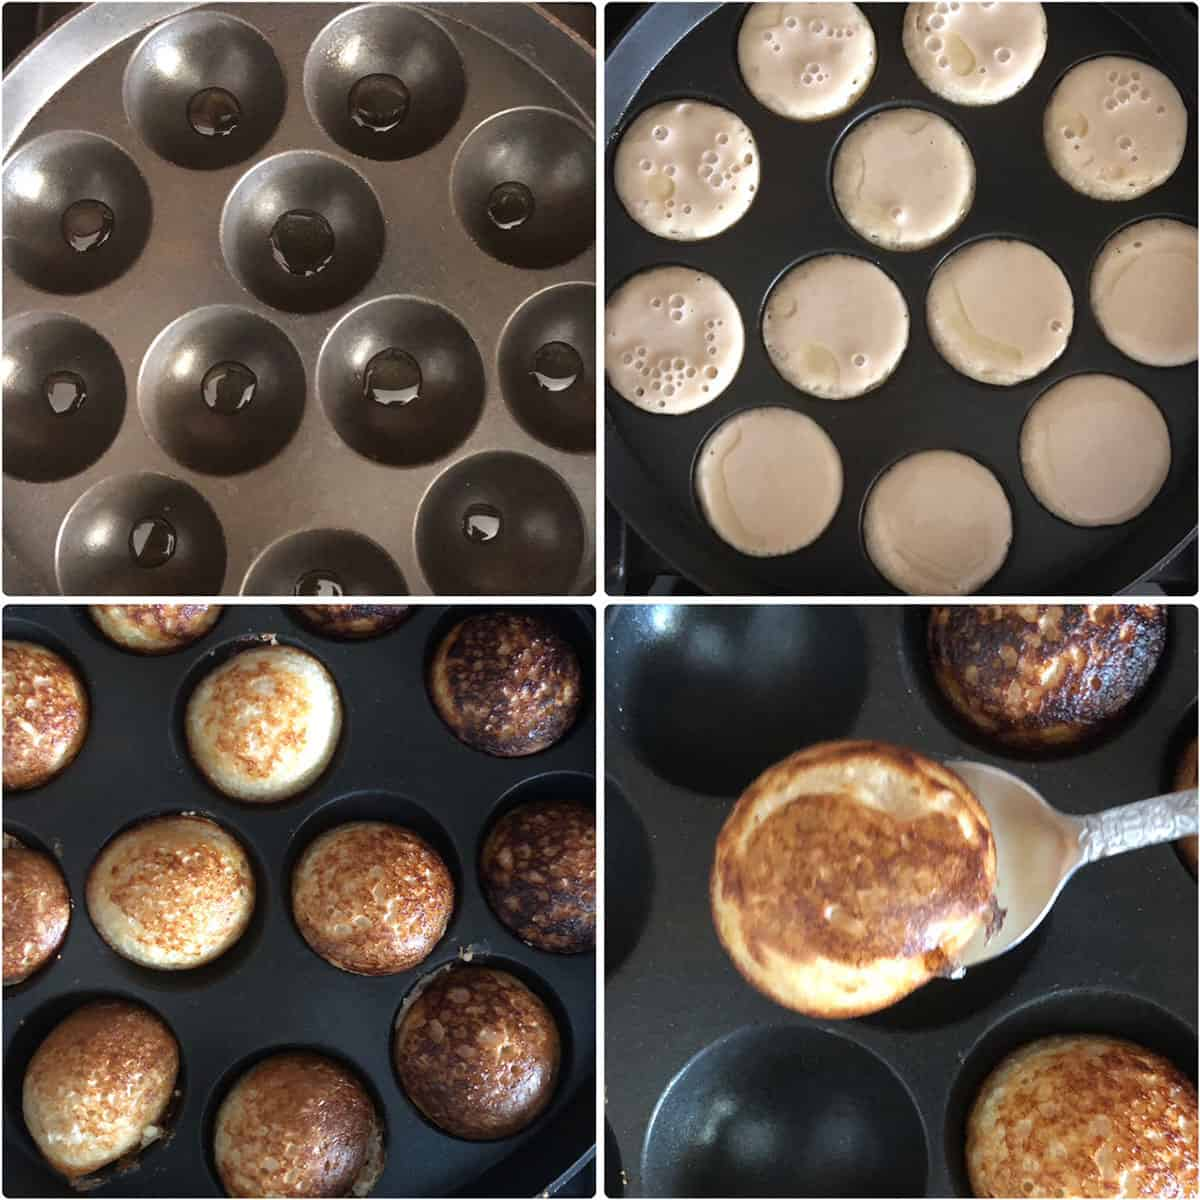 Step by step photos showing heating oil in an aebliskiver pan and cooking until golden